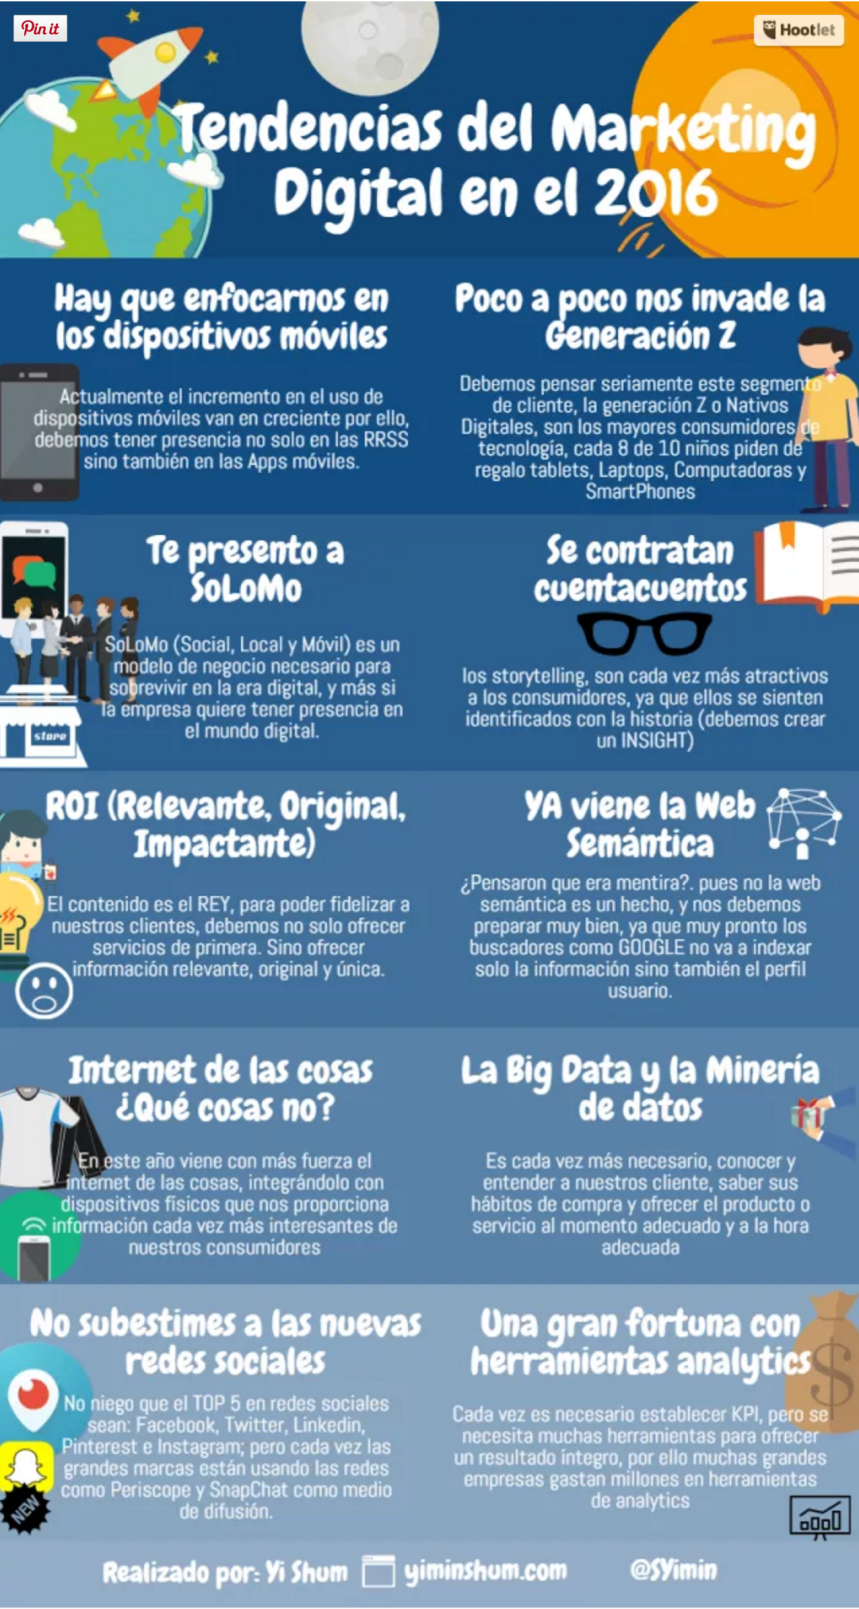 Tendencias sobre Marketing Digital para 2016